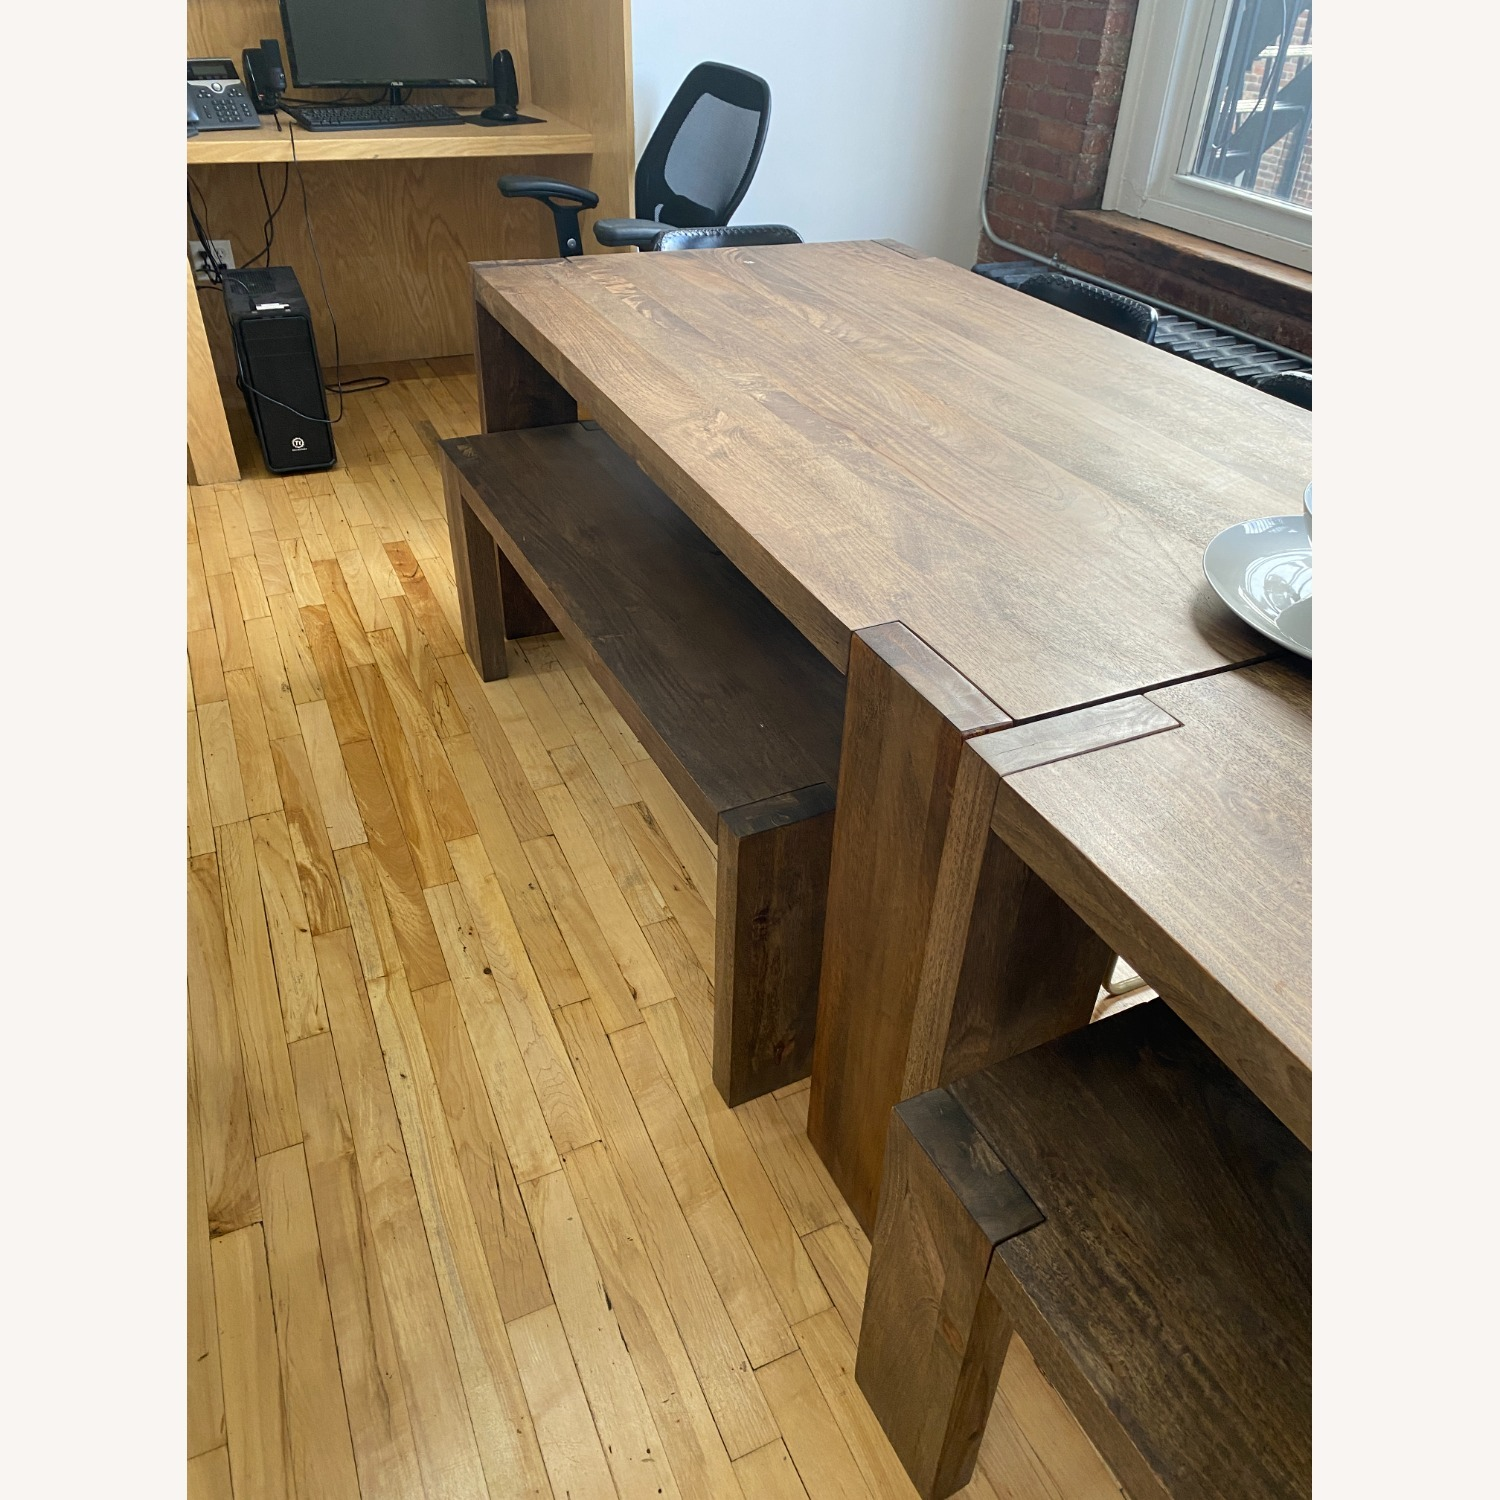 CB2 Solid Wood Blox Dining Table & Bench Set - image-4